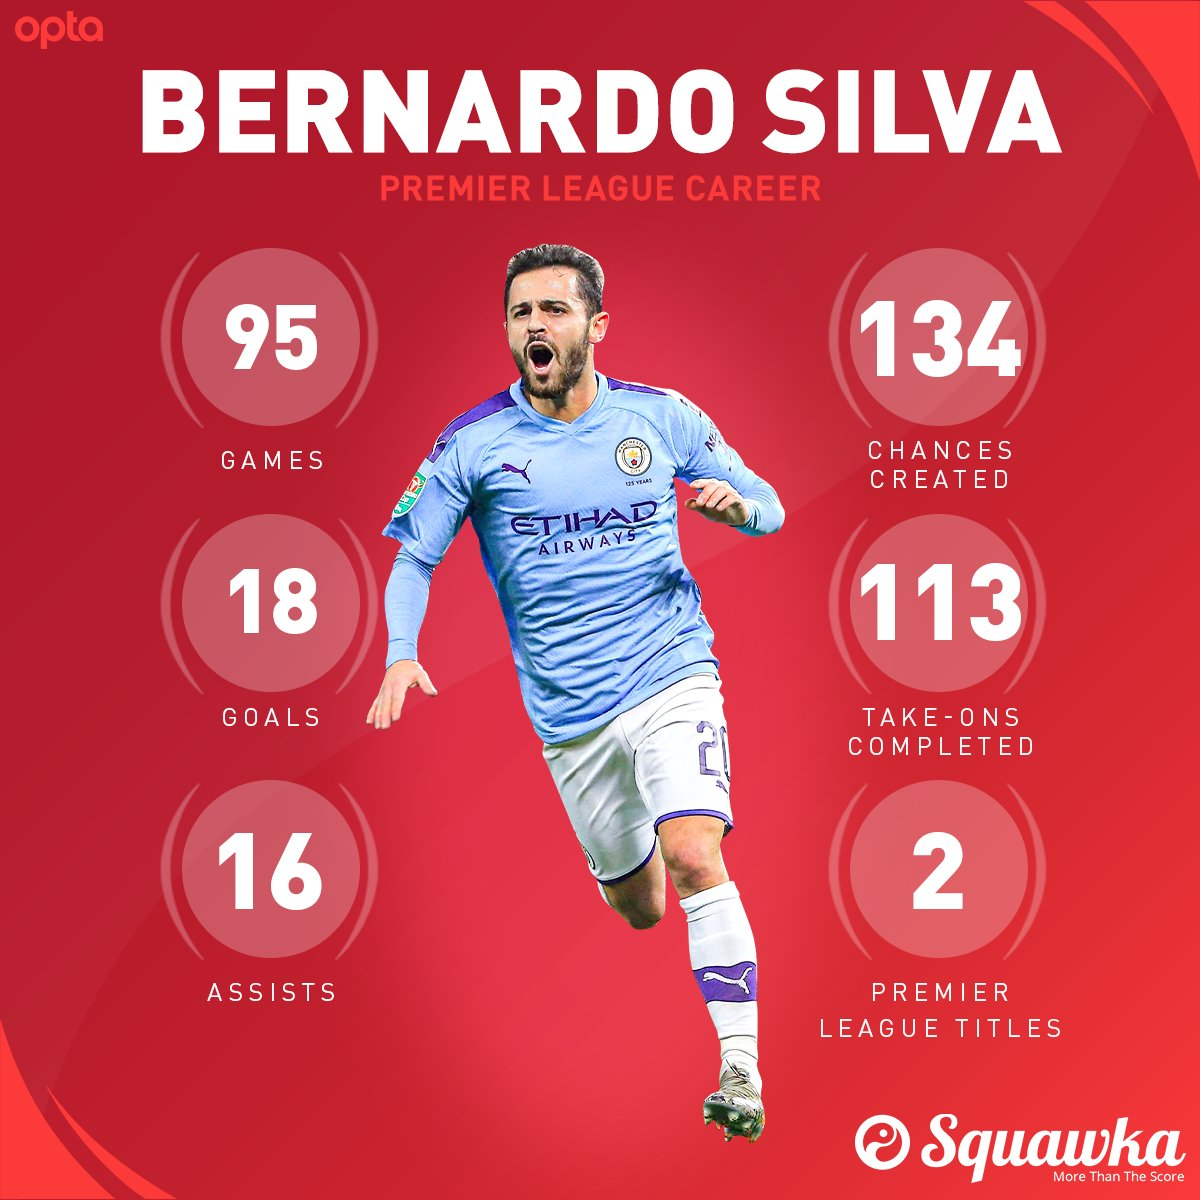 ON THIS DAY: In 2017, Manchester City confirmed the signing of Bernardo Silva from AS Monaco for a reported fee of €50 million.  Three seasons. EIGHT trophies. https://t.co/VLGJtcwNJZ